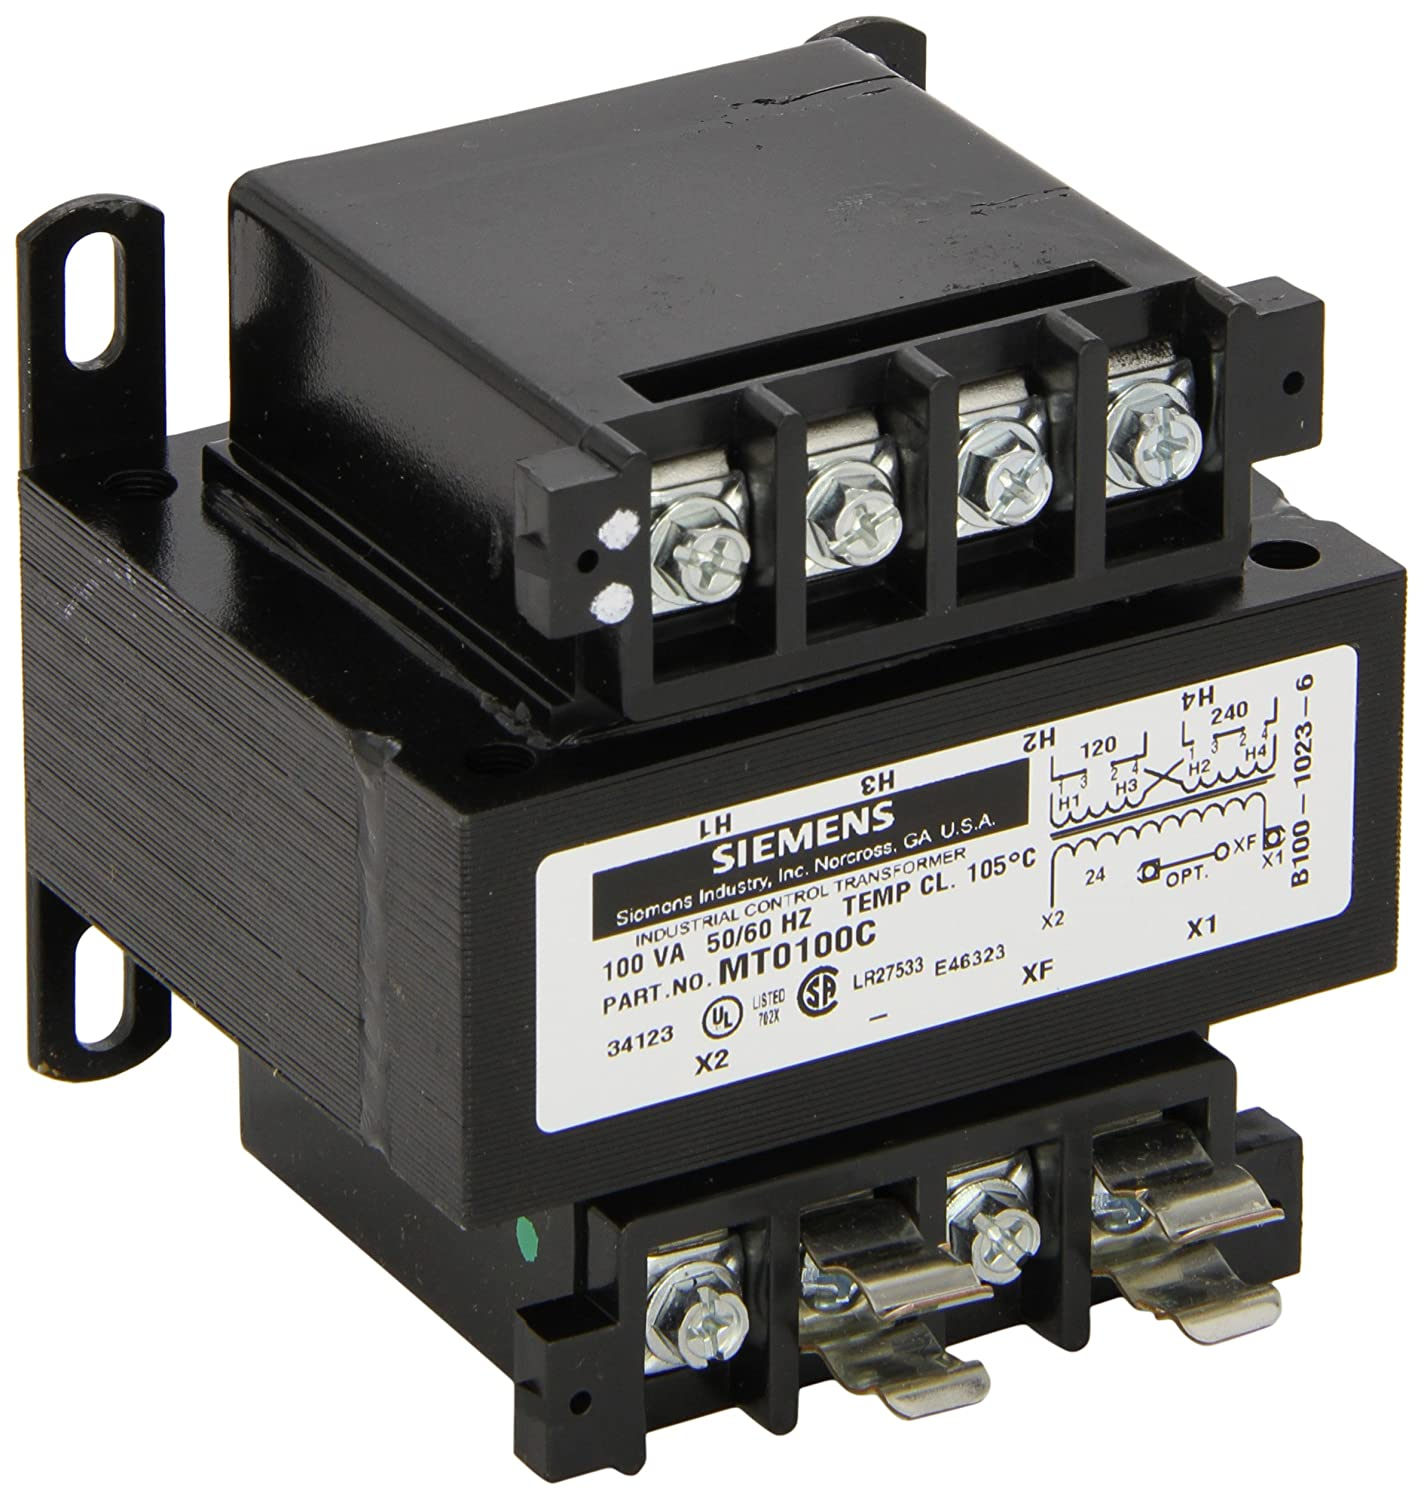 480 To 120 Volt Transformer Wiring Diagram As Well As 480 Volt 3 Phase